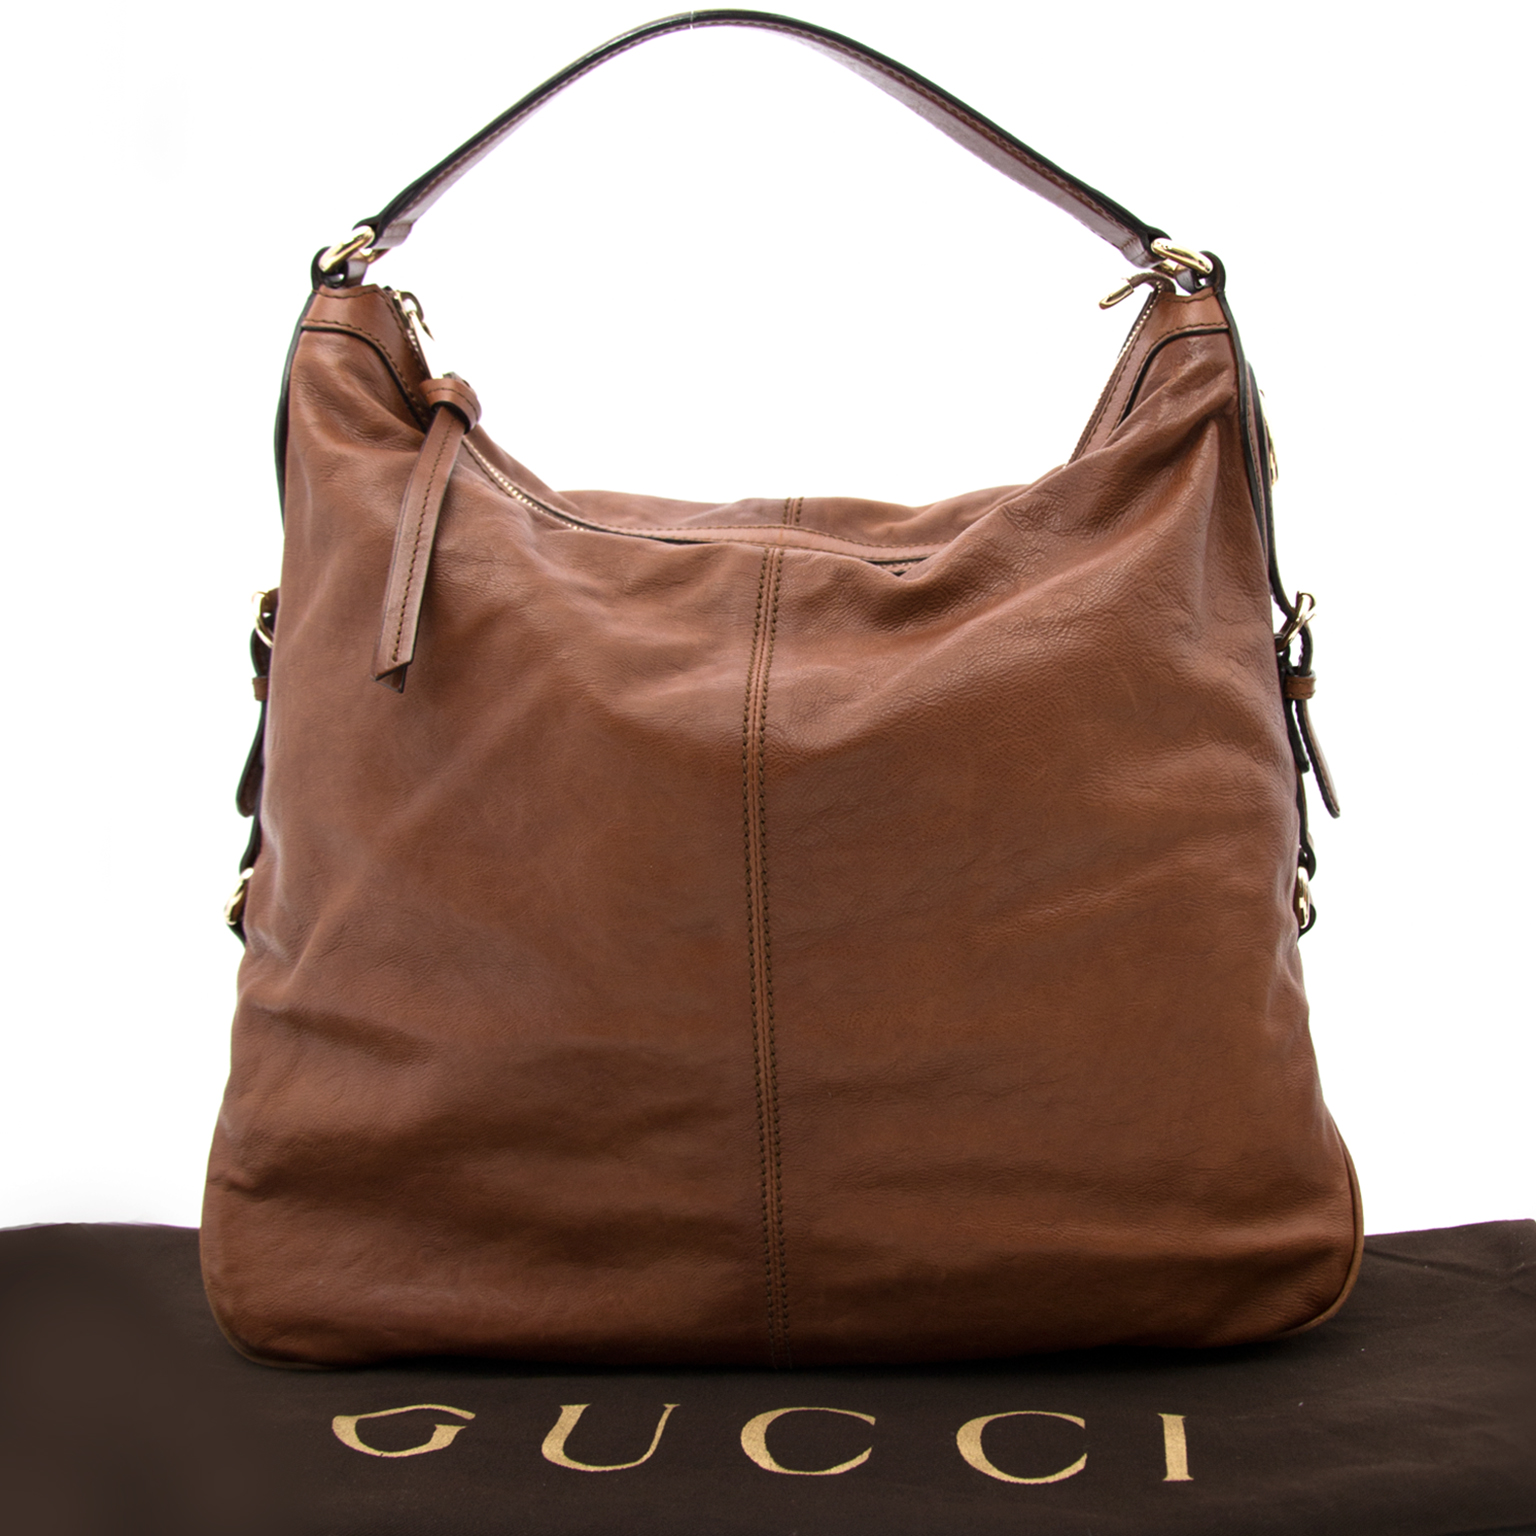 We buy and sell your secondhand designer handbags such as Gucci Brown Leather Shoulder Bag